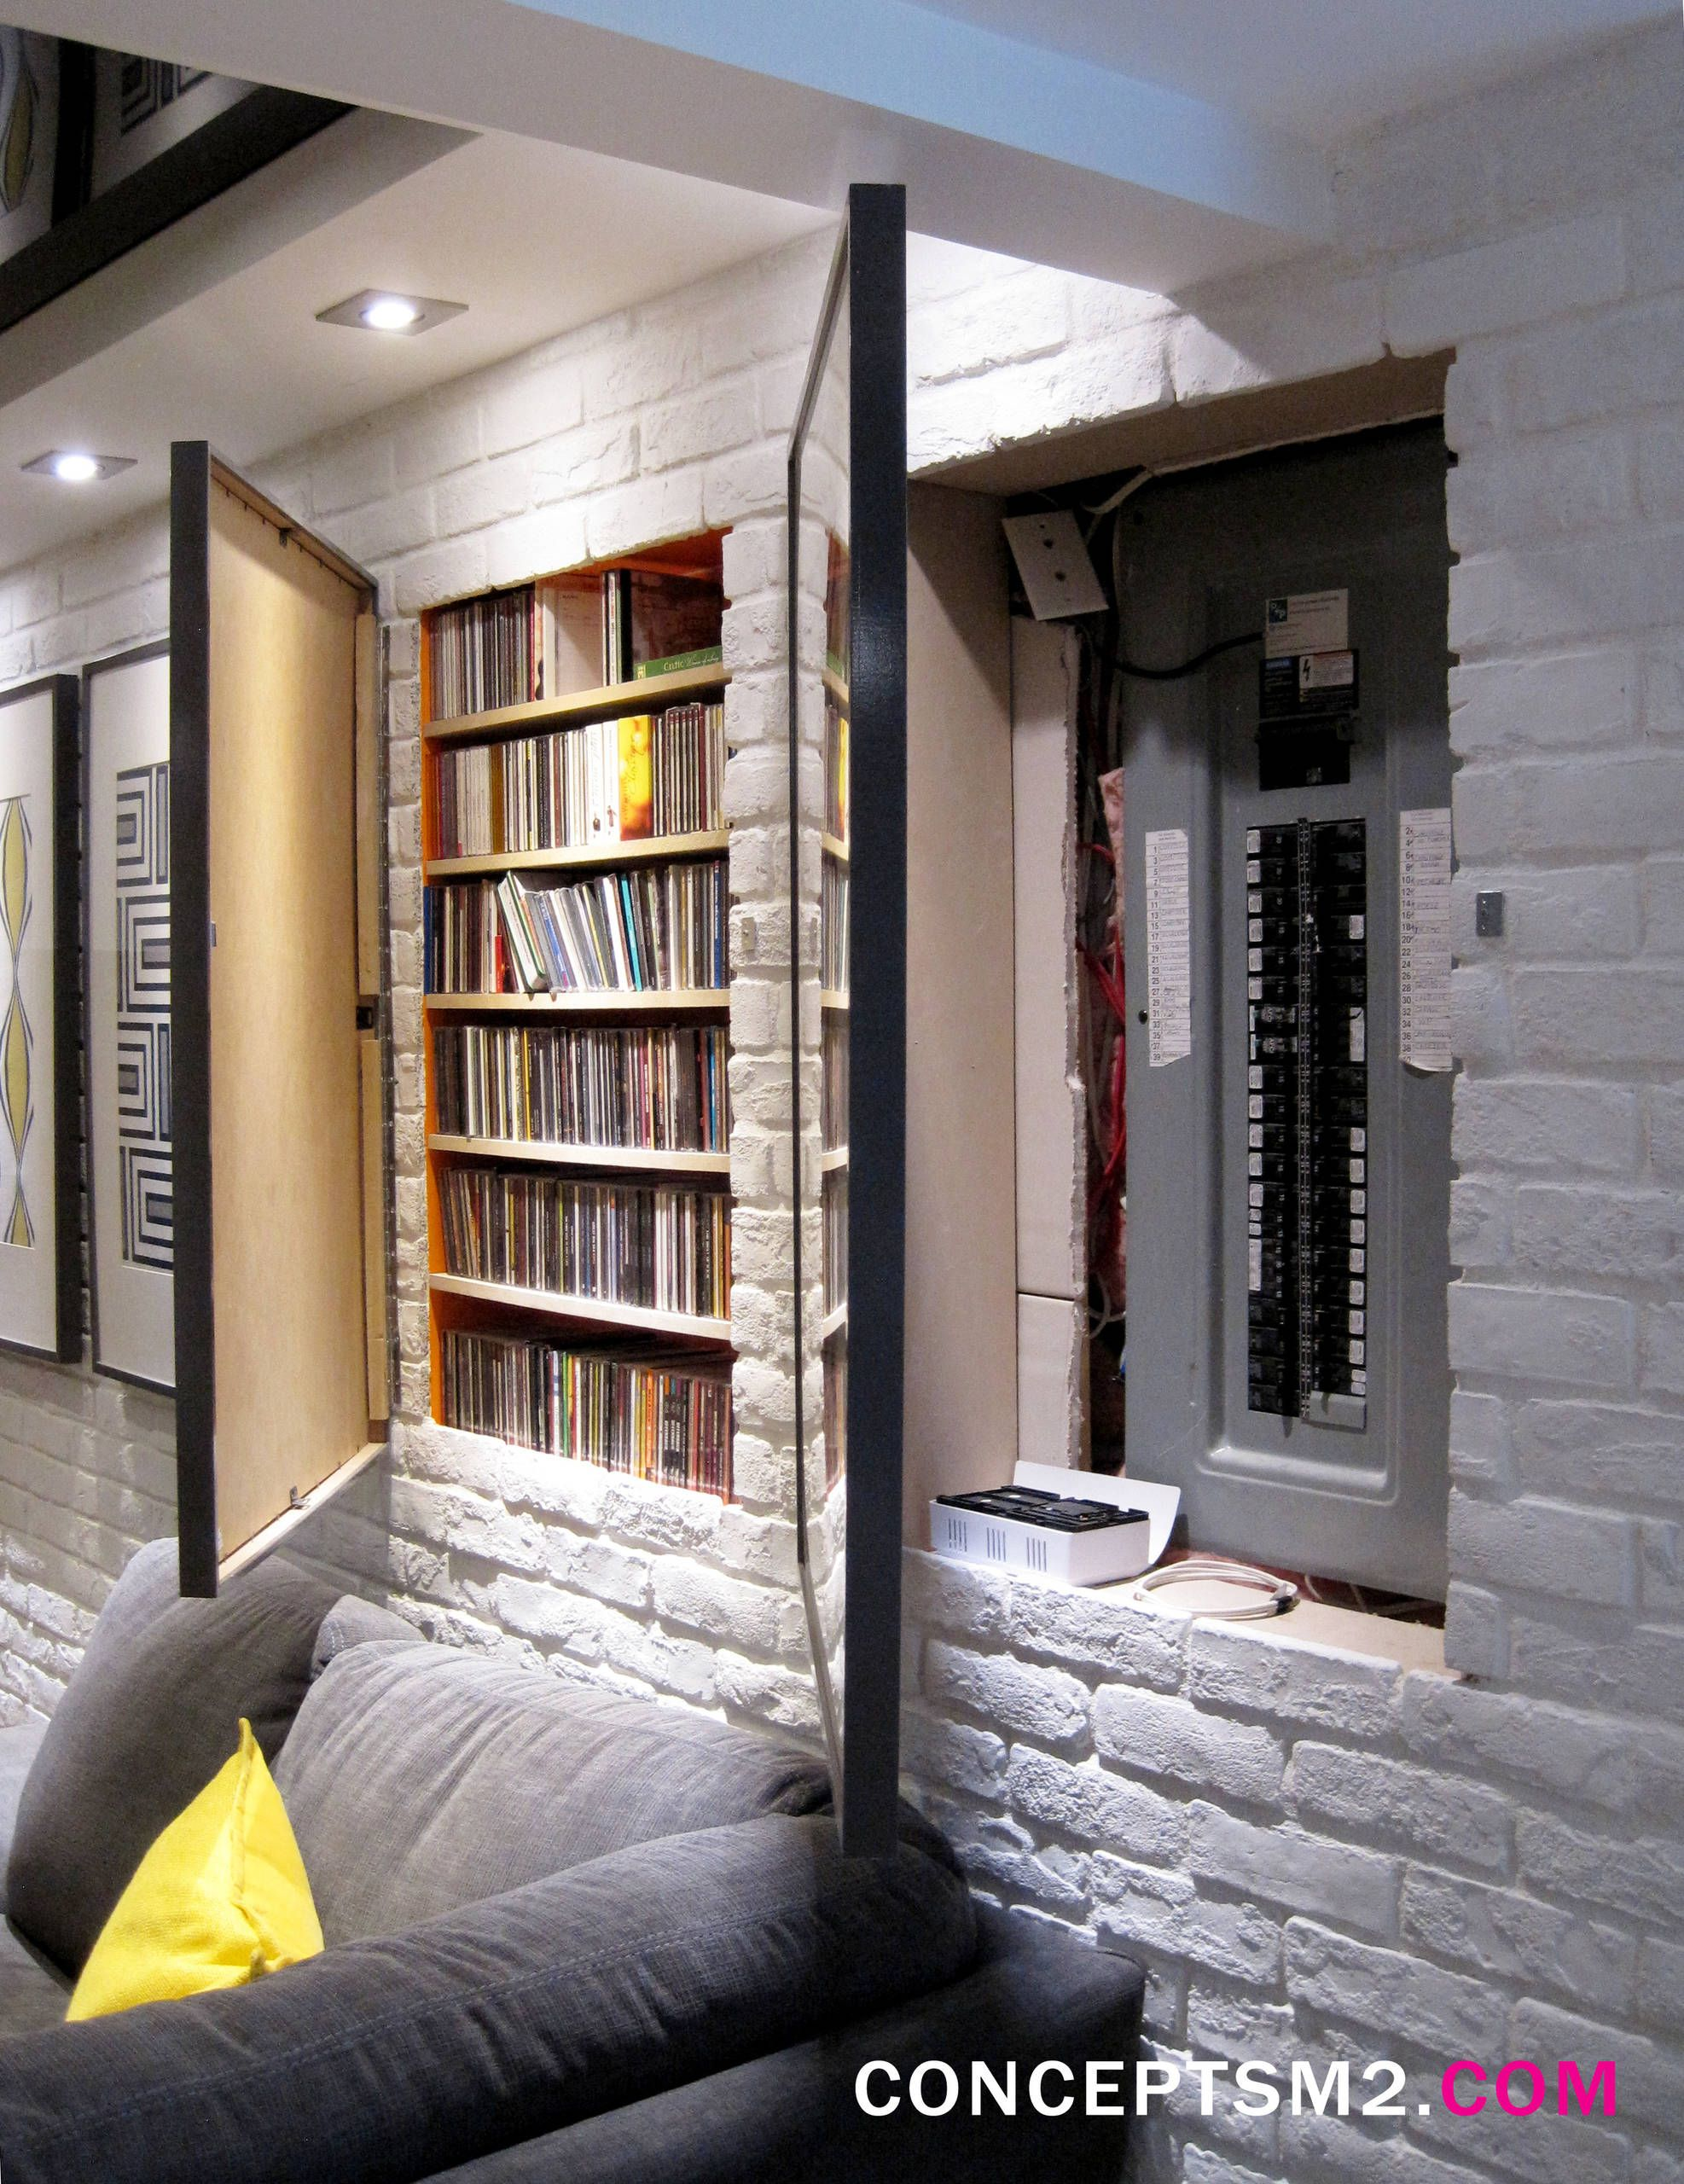 27 Perfectly Captivating Basement Design Ideas 27